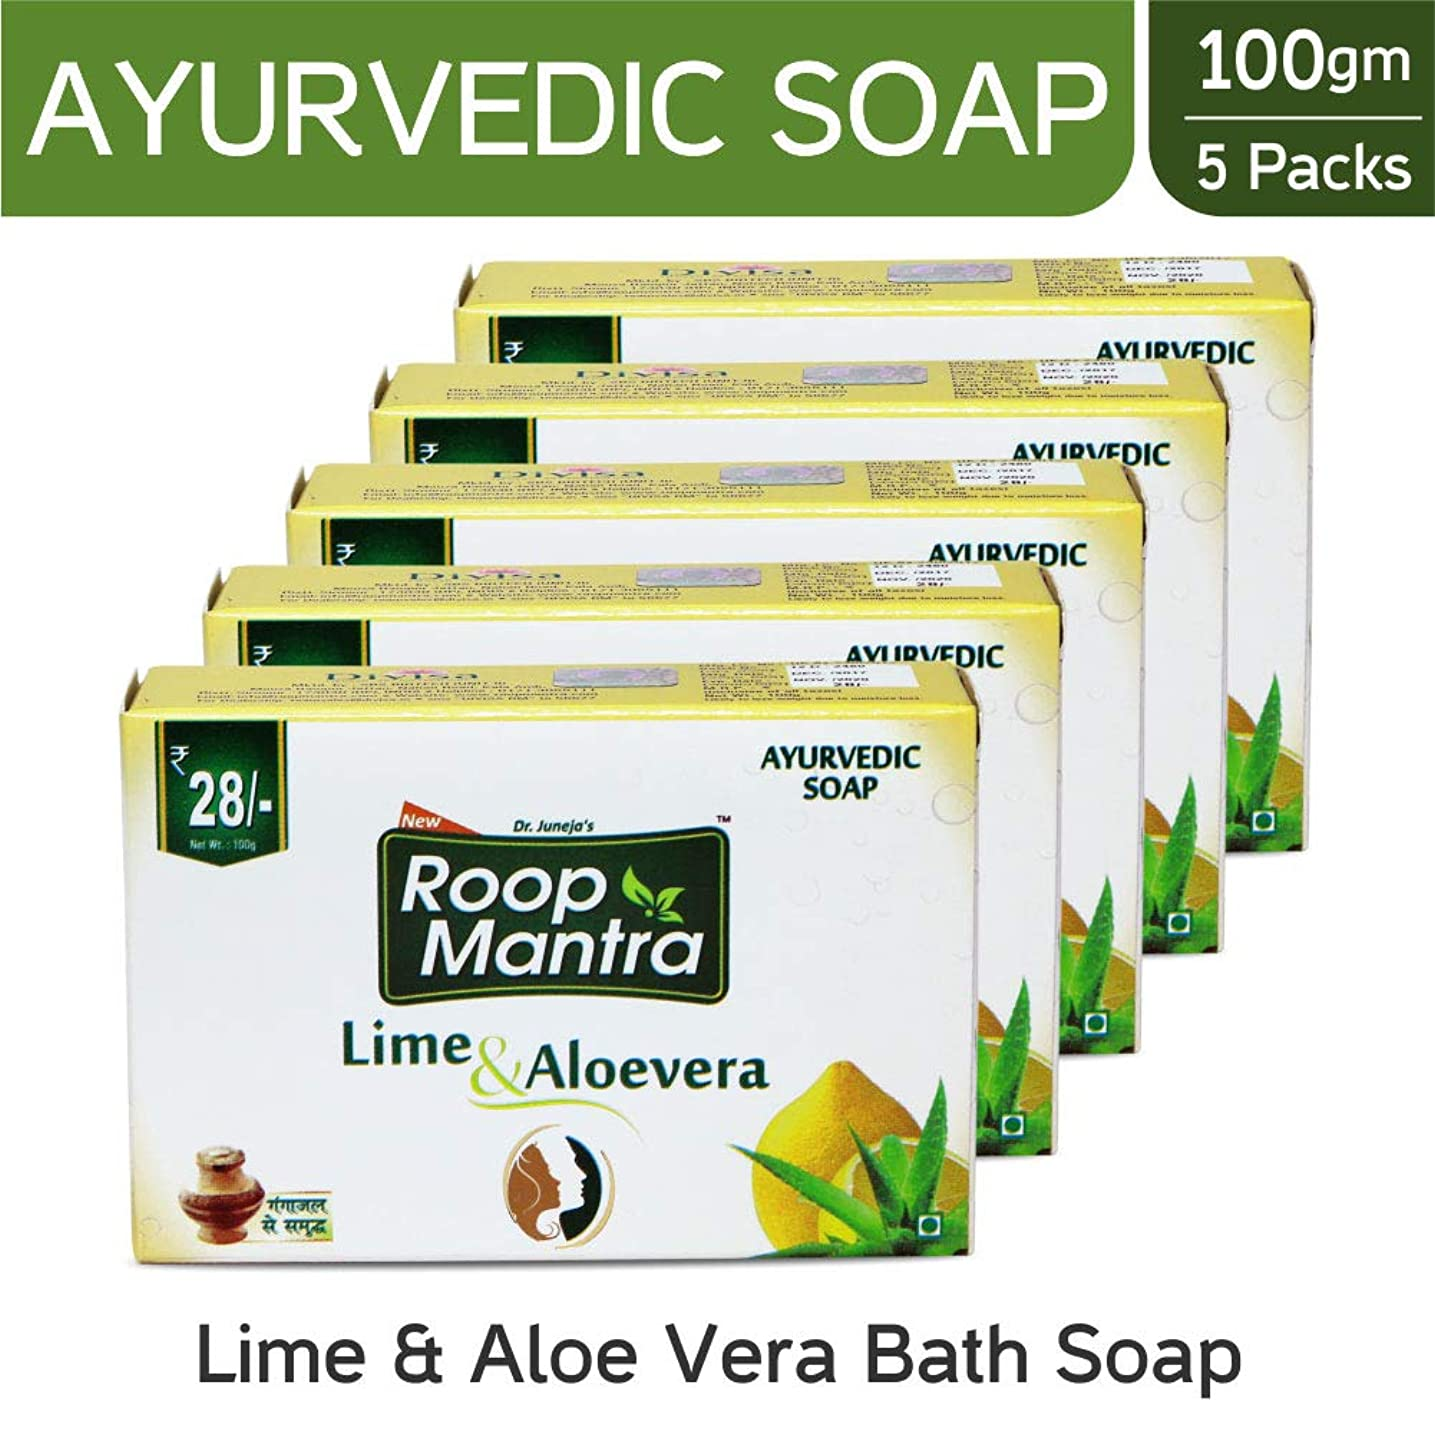 独裁押し下げる仲介者Roop Mantra Ayurvedic Bath Soap, Lime and Aloevera, 100g (Pack of 5)